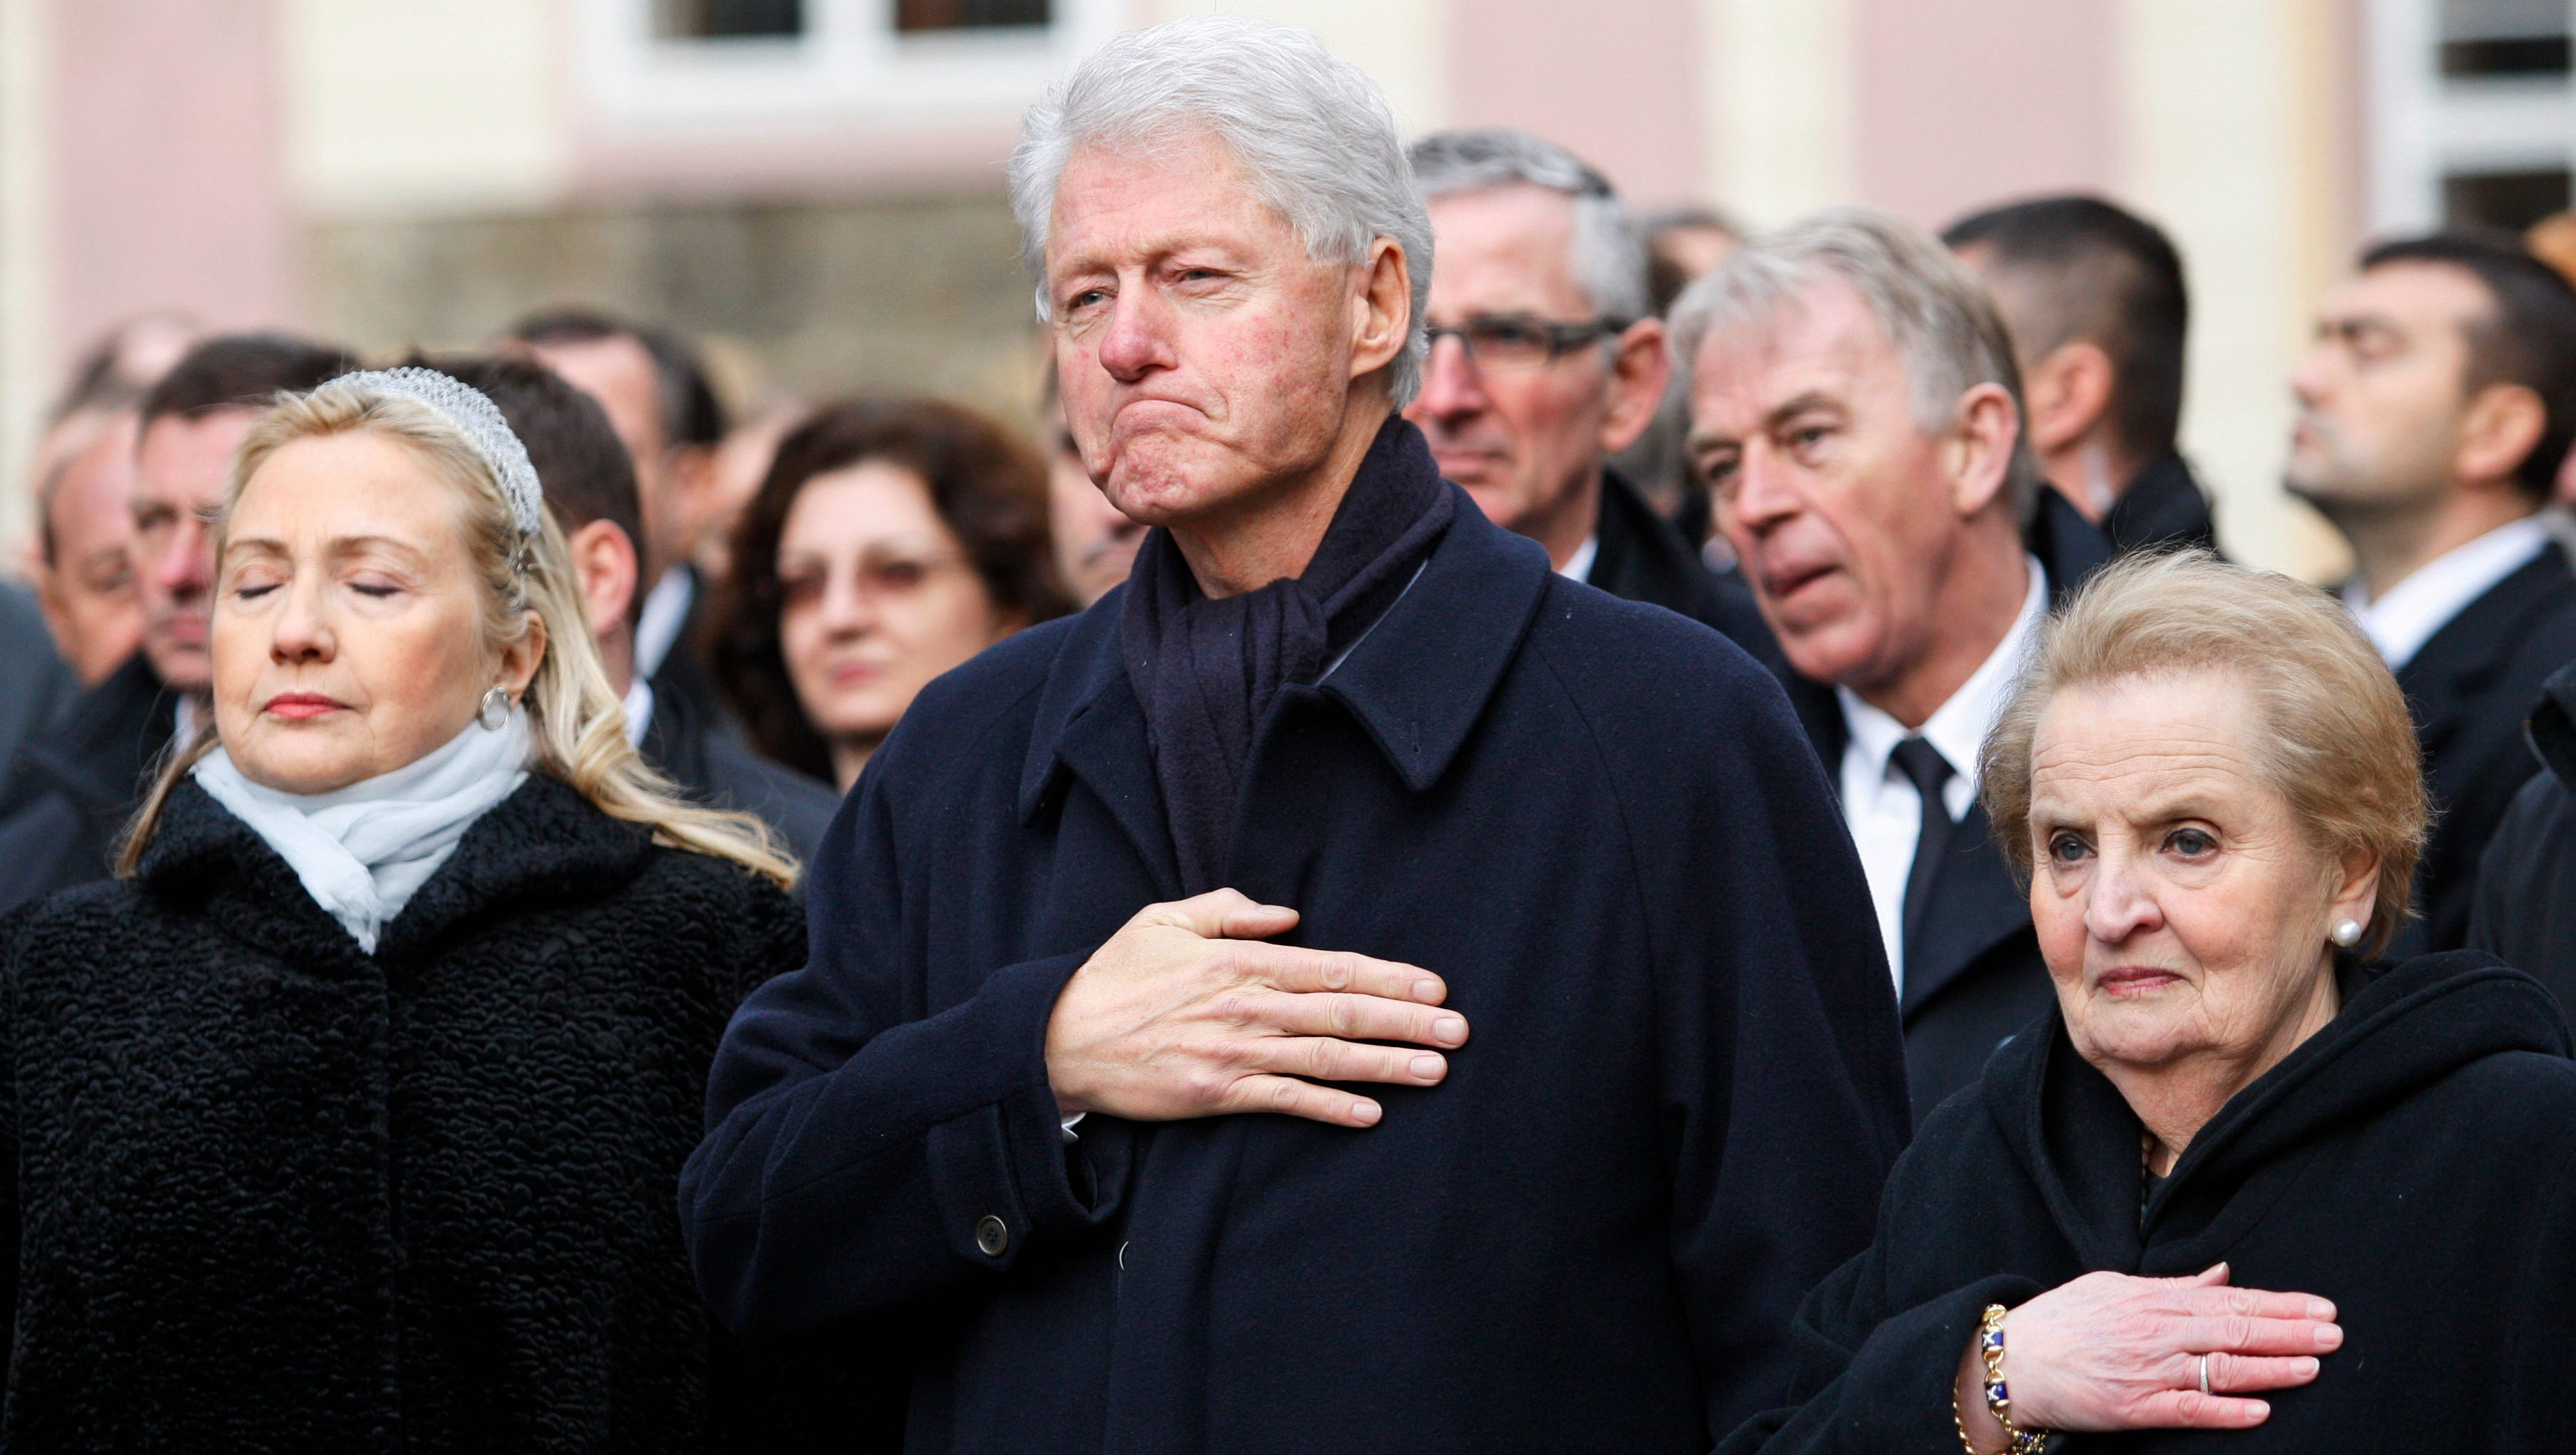 Bill Clinton Paid A Price For His Lies And So Will Donald Trump